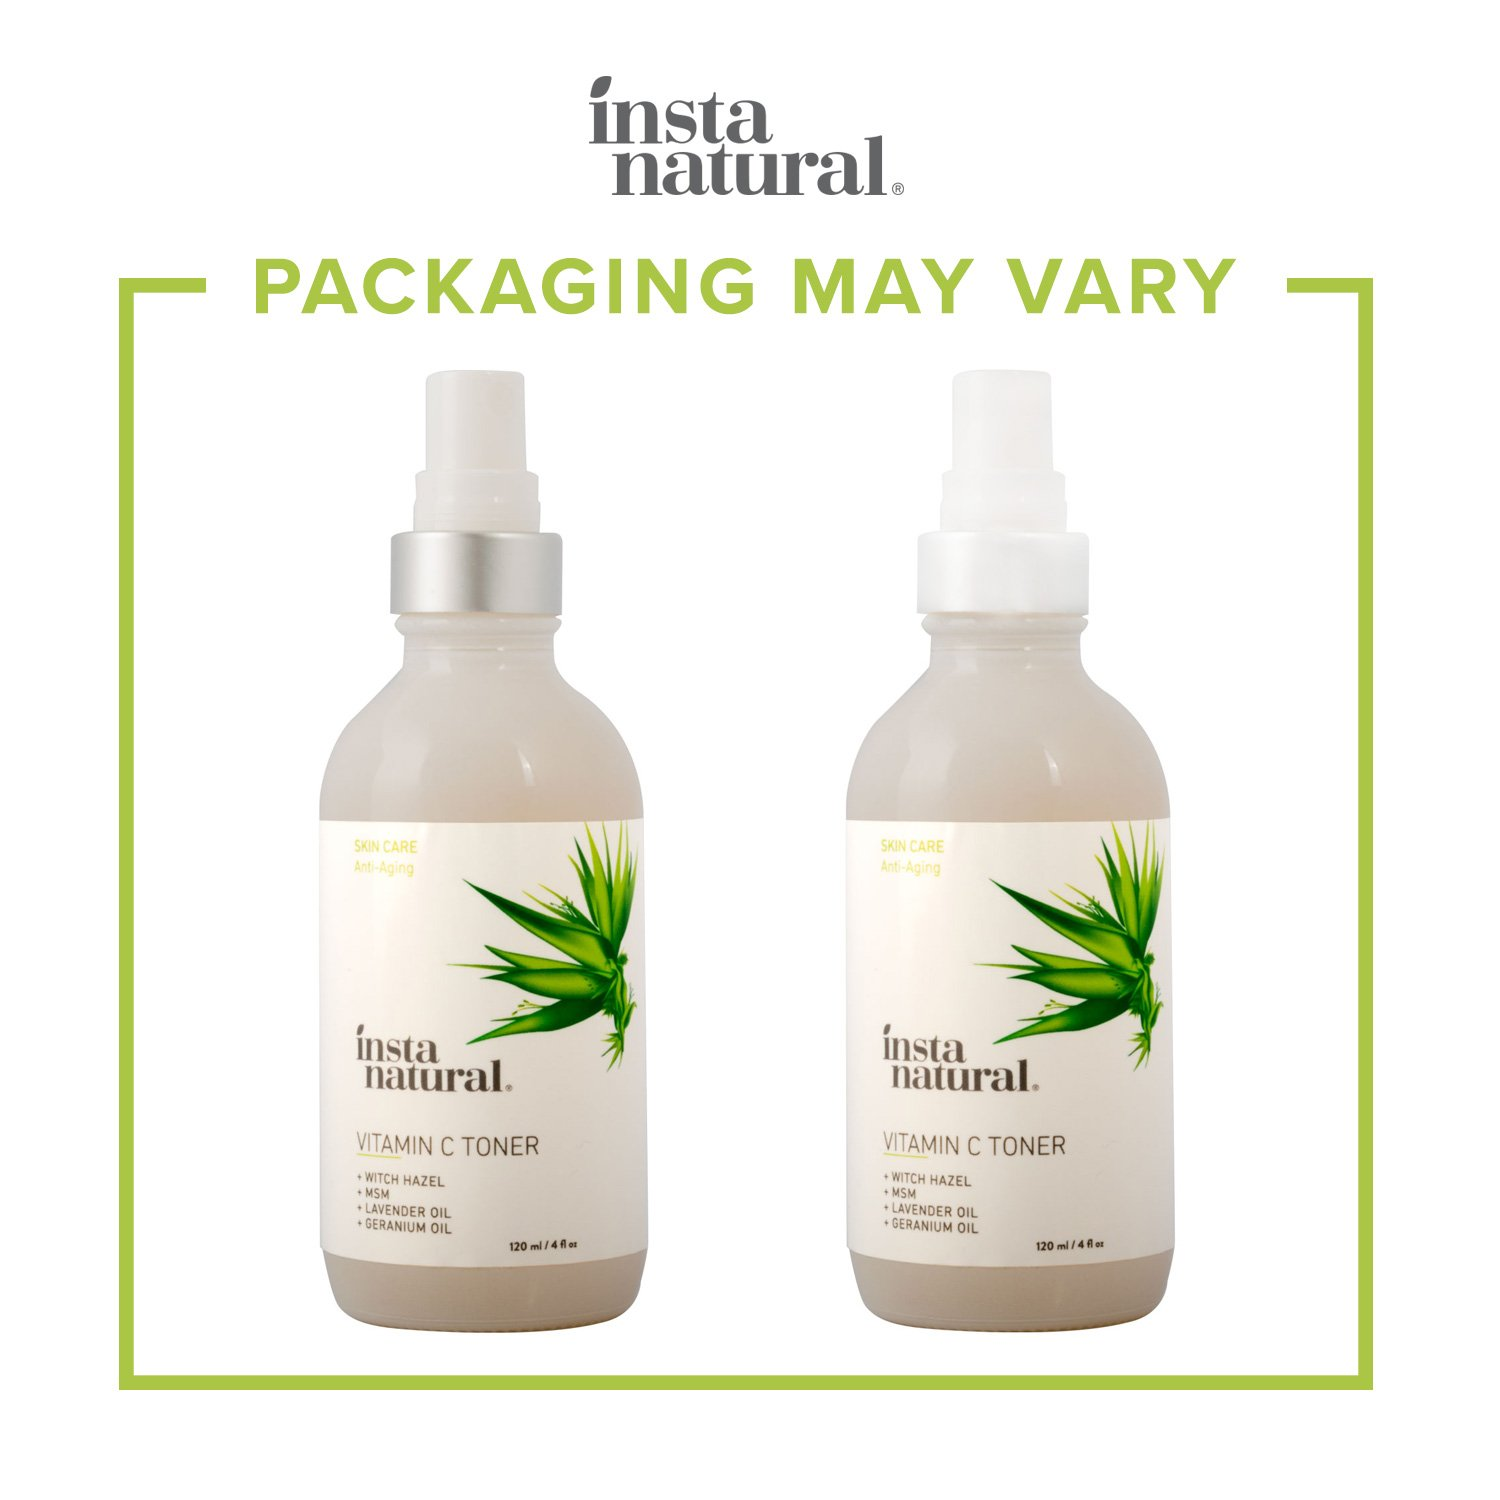 Vitamin C Skin Clearing Face Toner - Natural & Organic Anti Aging Formula with Salicylic Acid & Hyaluronic Acid - Helps Wrinkle, Dark Spot, Fine Lines - Safe for Sensitive Skin - InstaNatural - 4 oz by InstaNatural (Image #6)